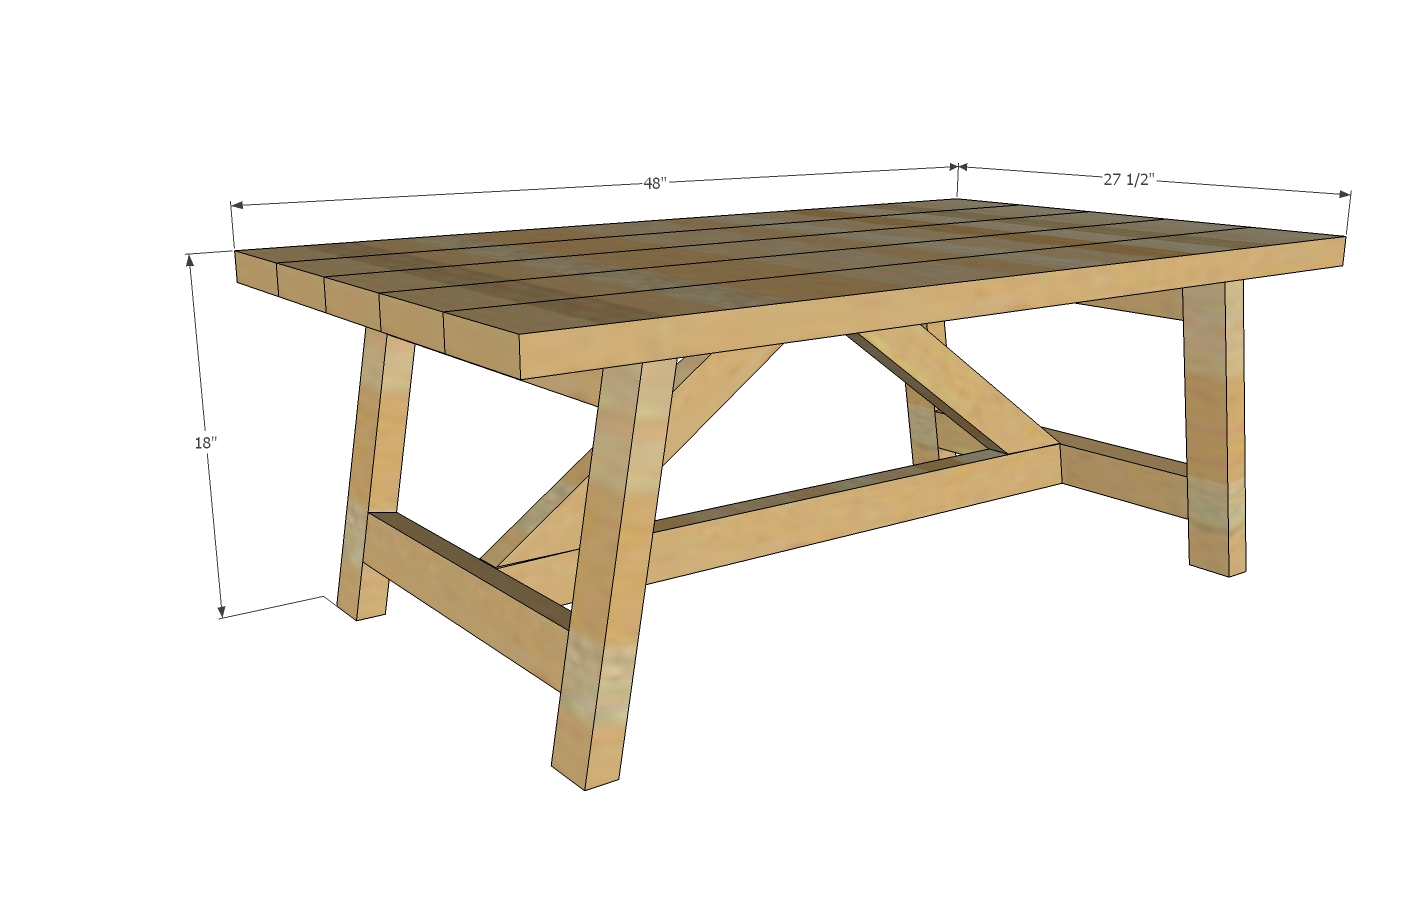 Truss coffee table woodworking plans woodshop plans for Table design plans